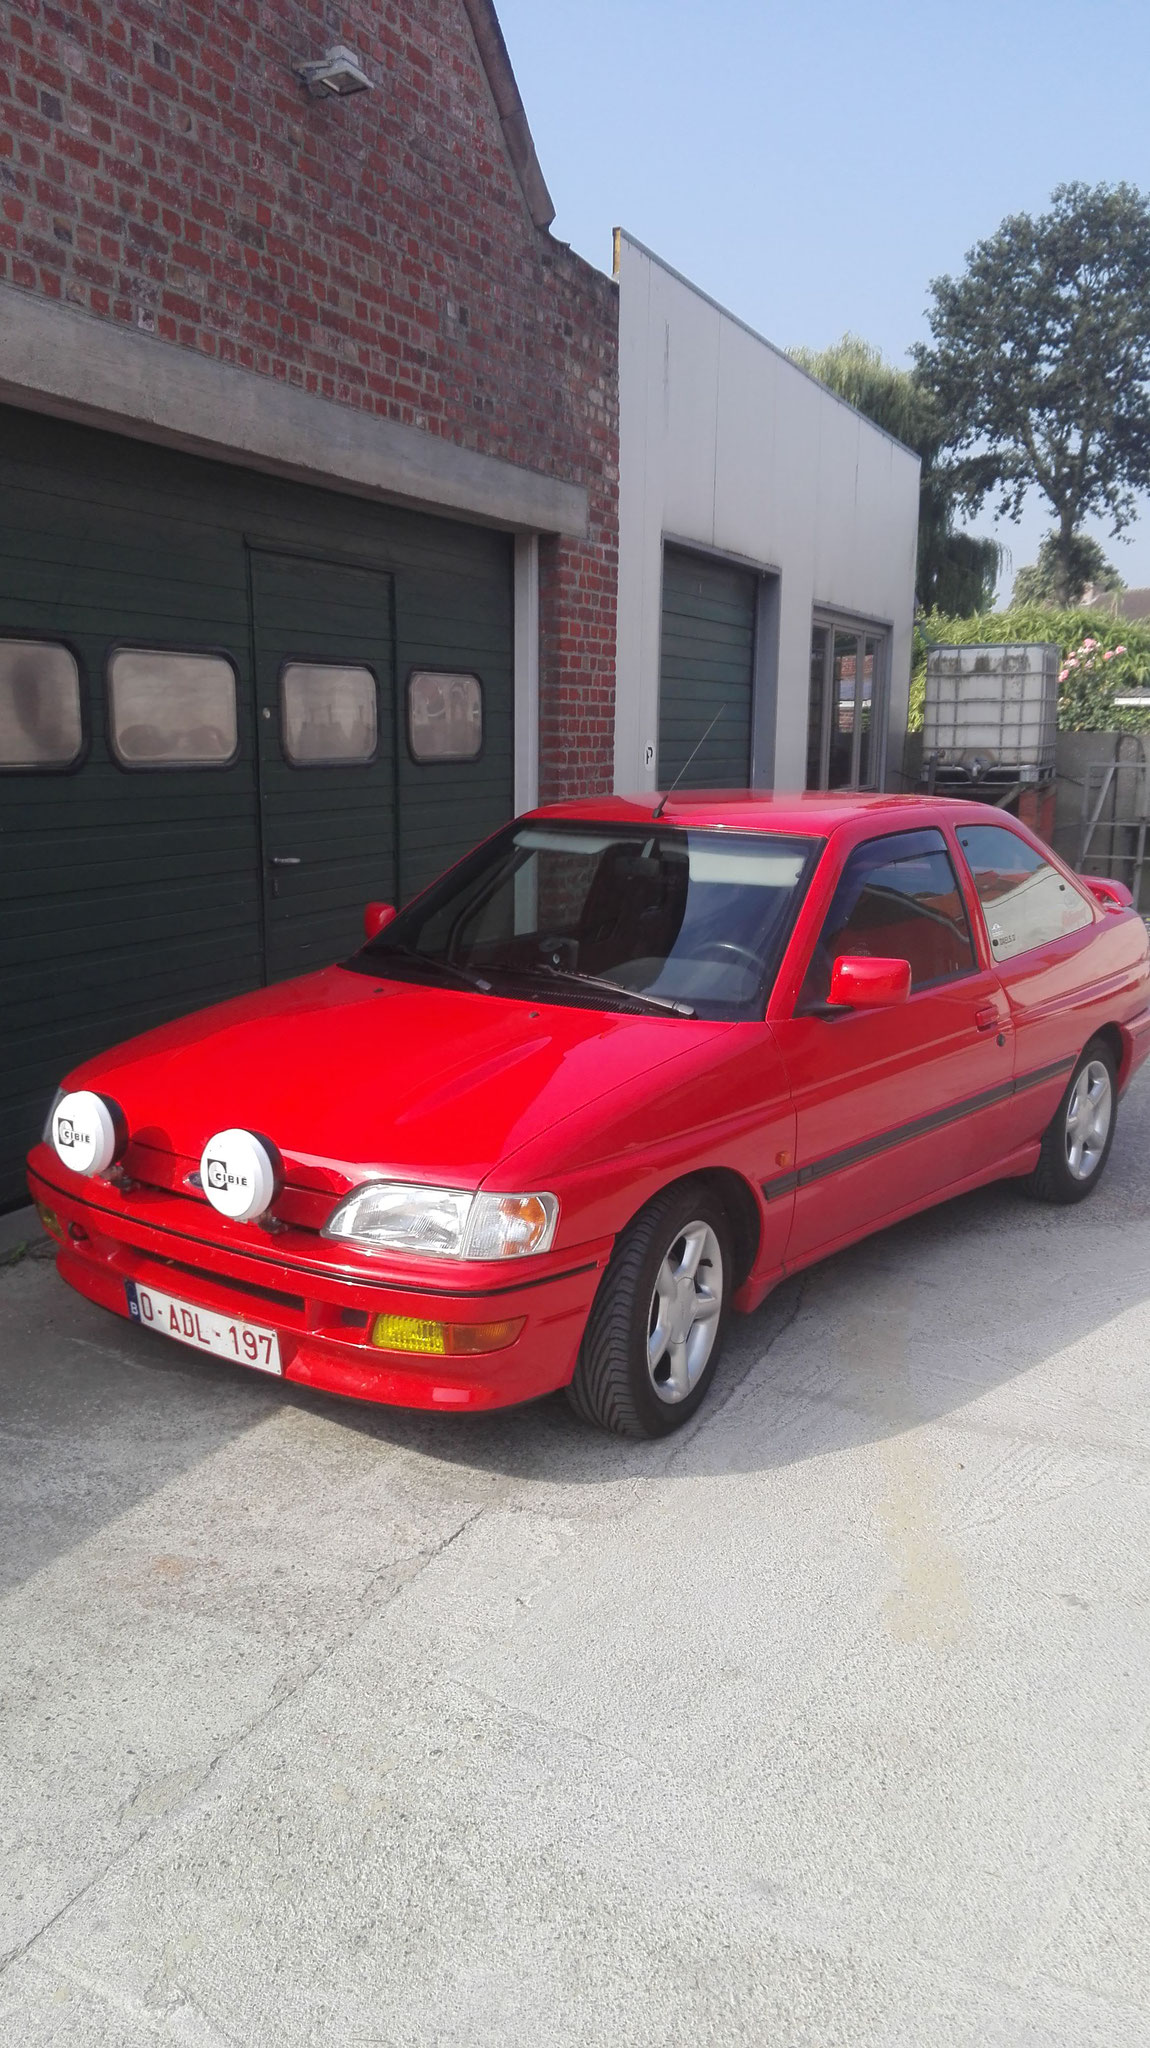 1015 - Ford - Escort rs2000 - 1991